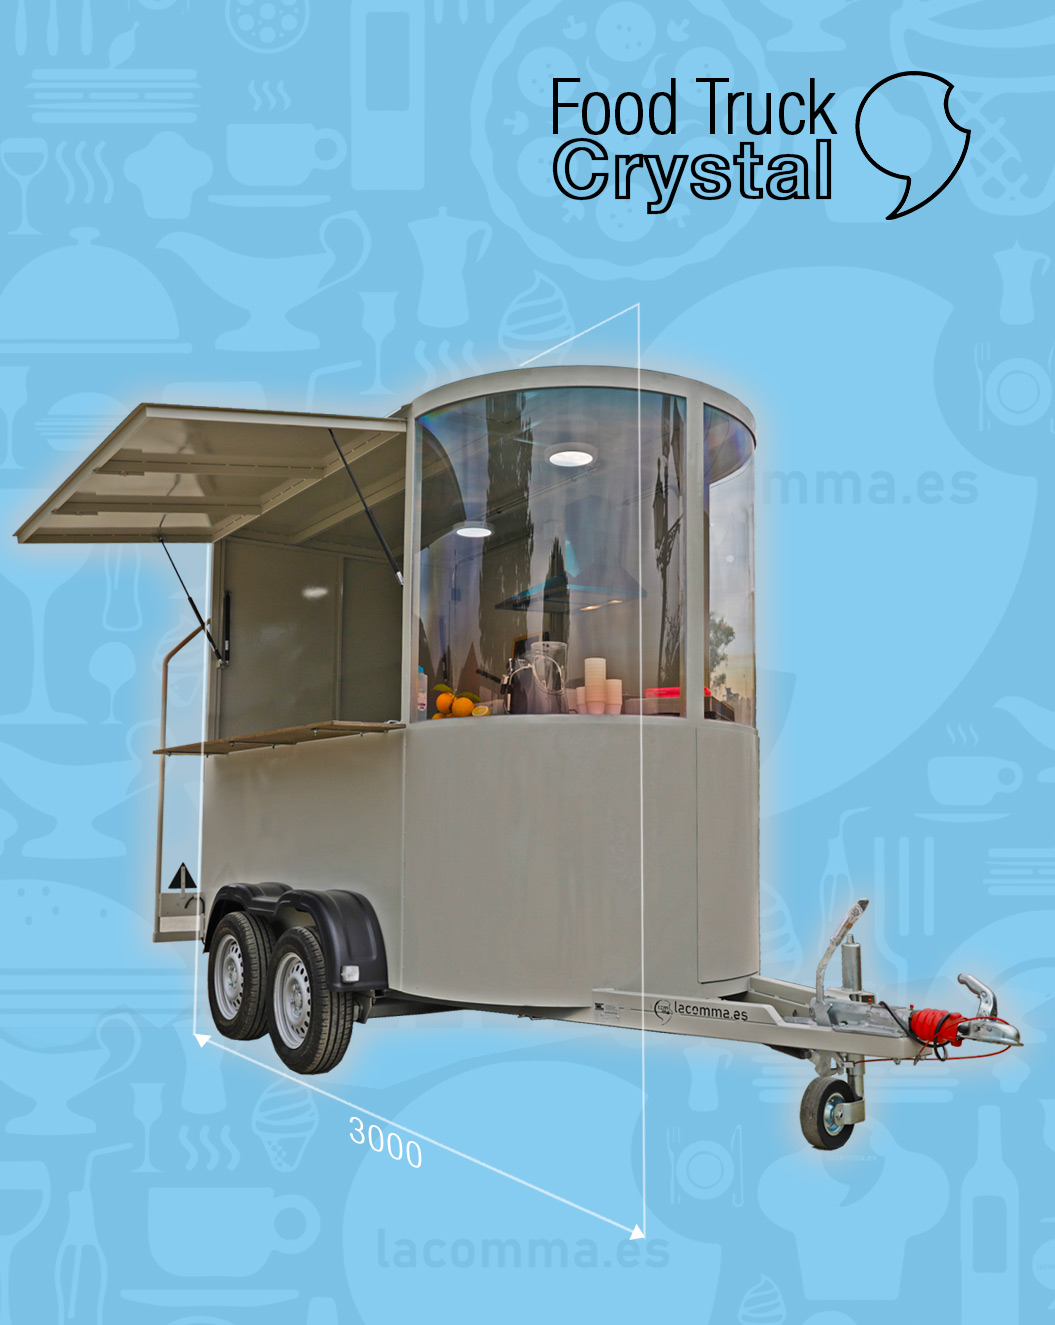 Foodtruck Crystal